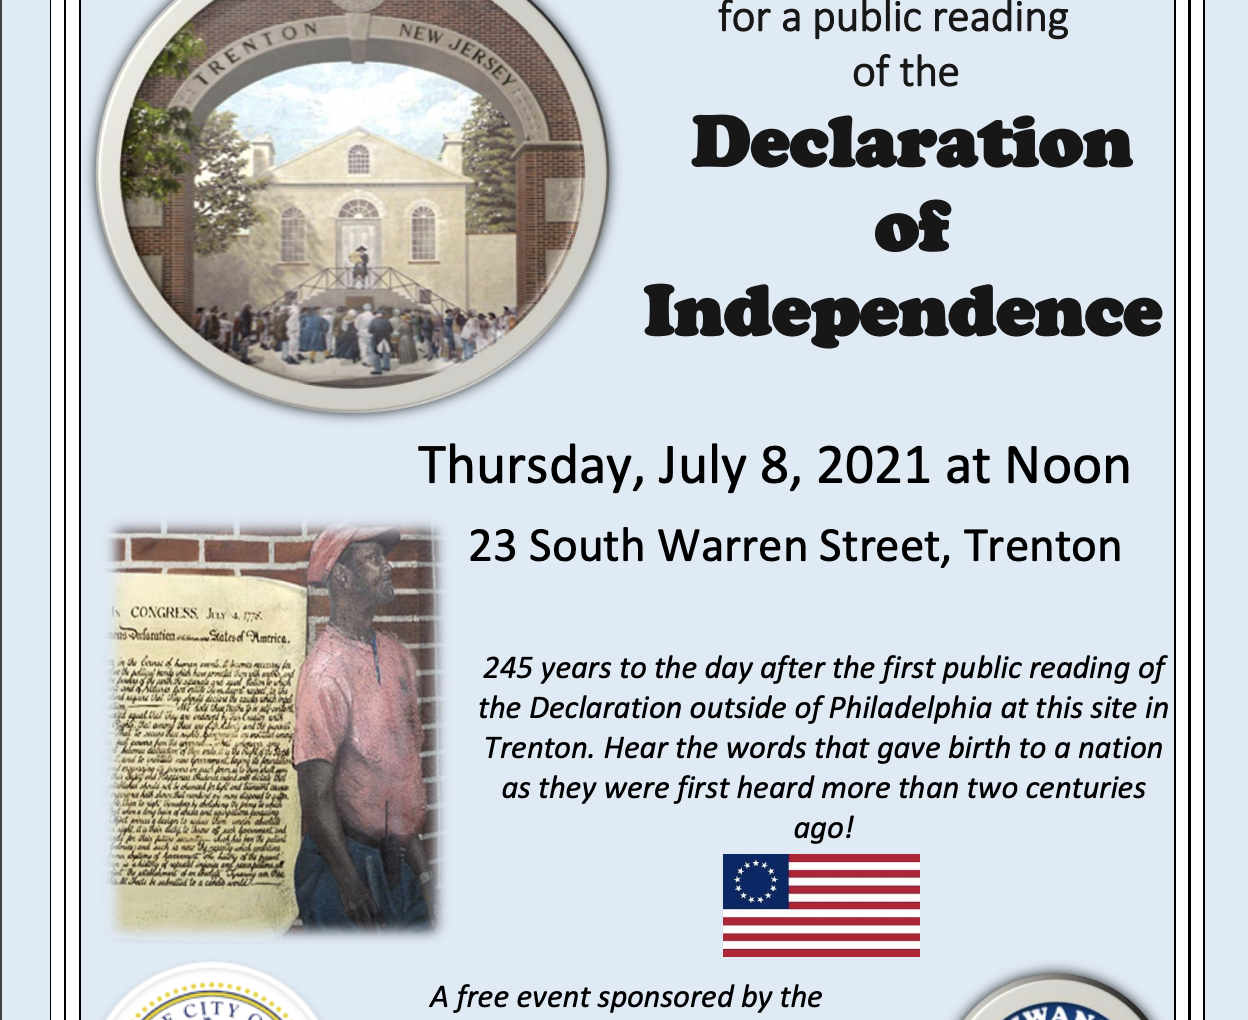 Trentonians Re-enact First Public Reading of the Declaration of Independence